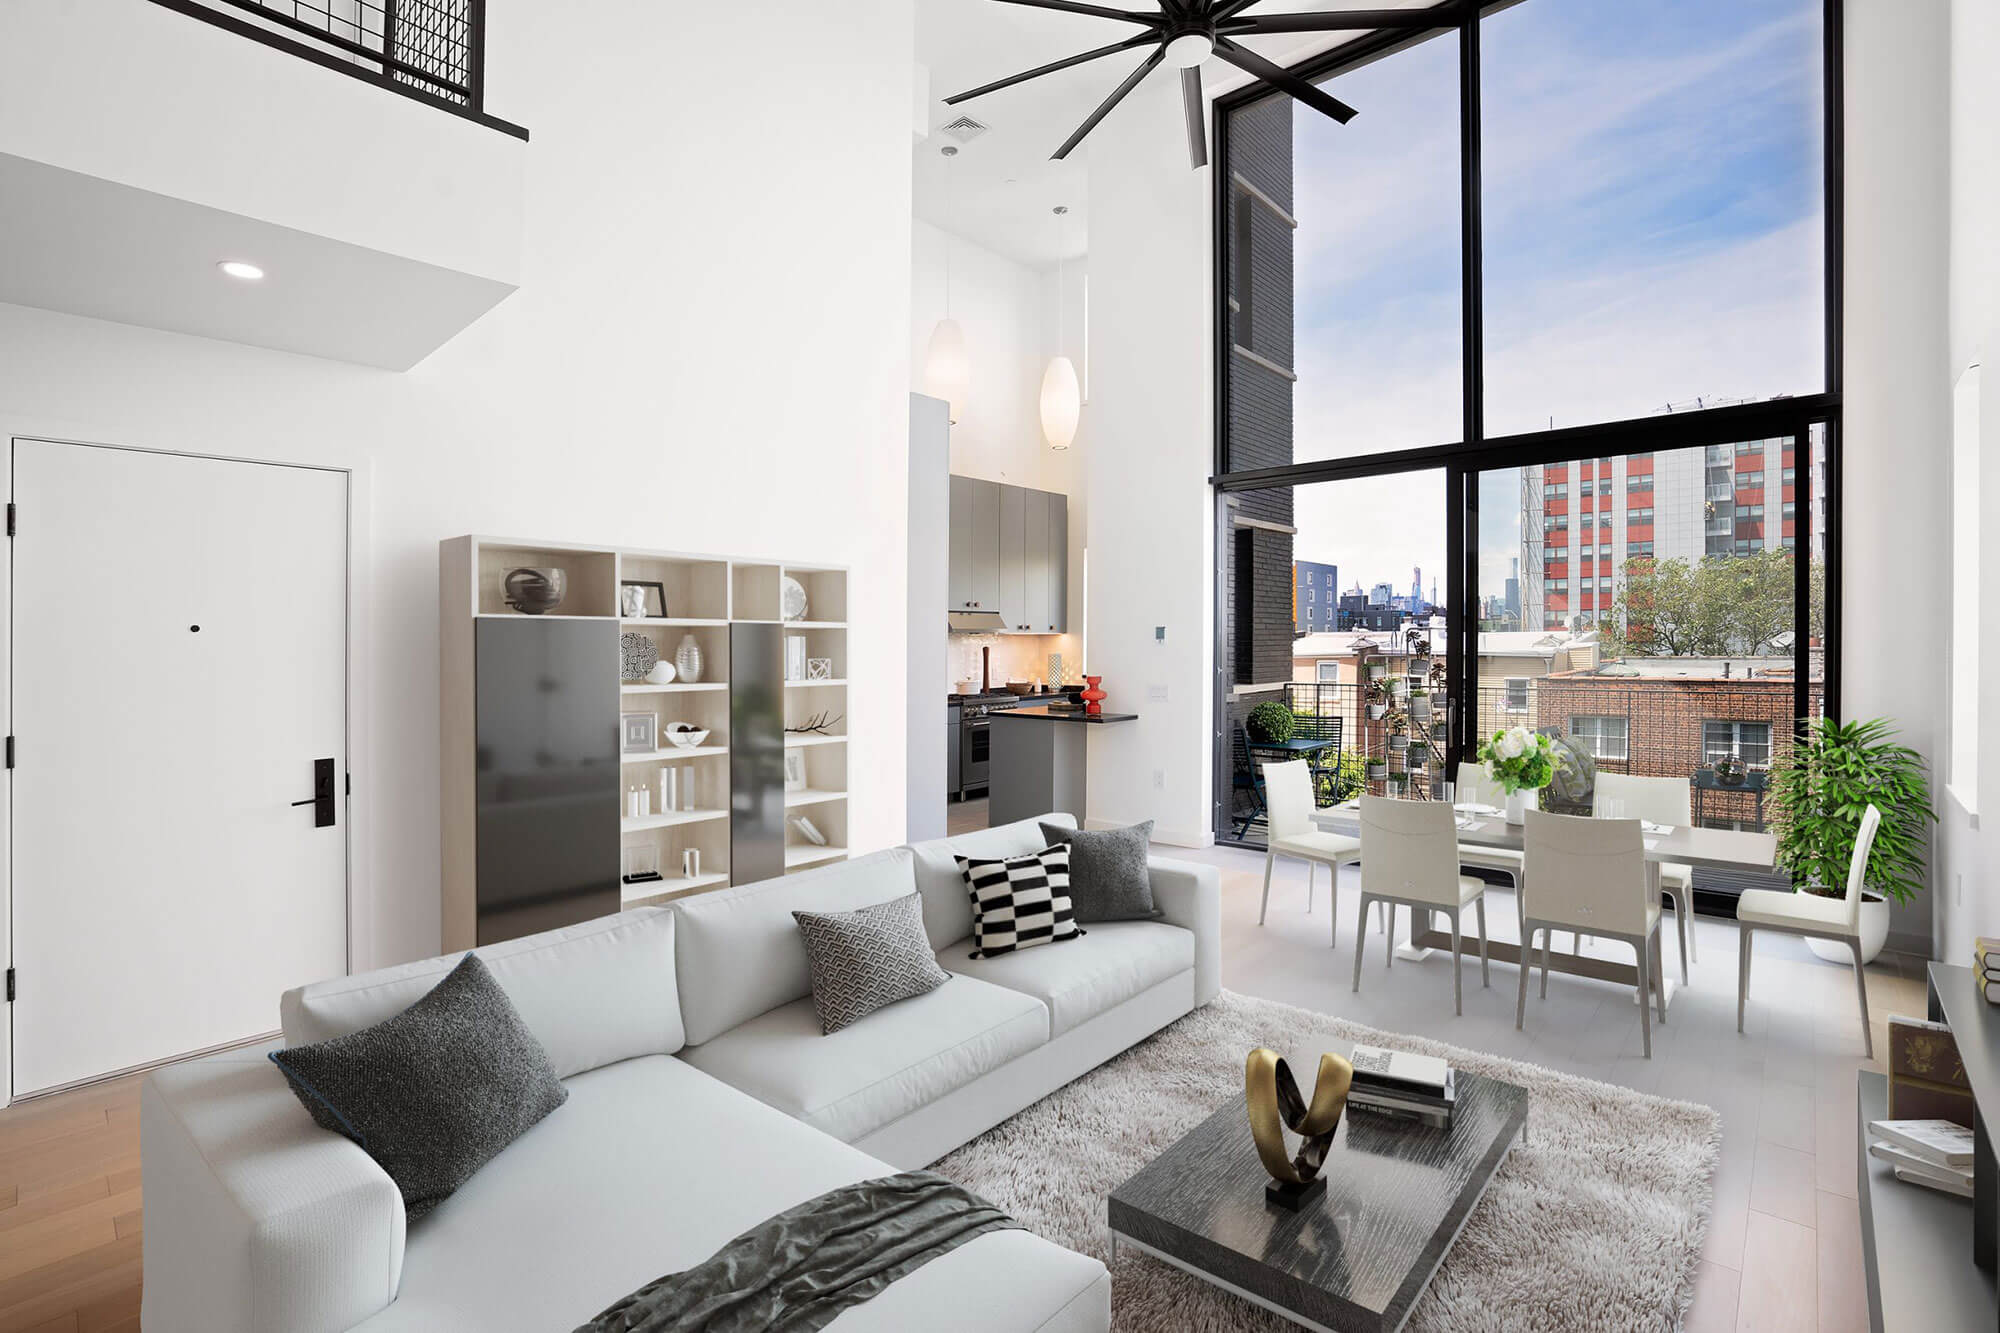 residential staged interior with tall ceilings